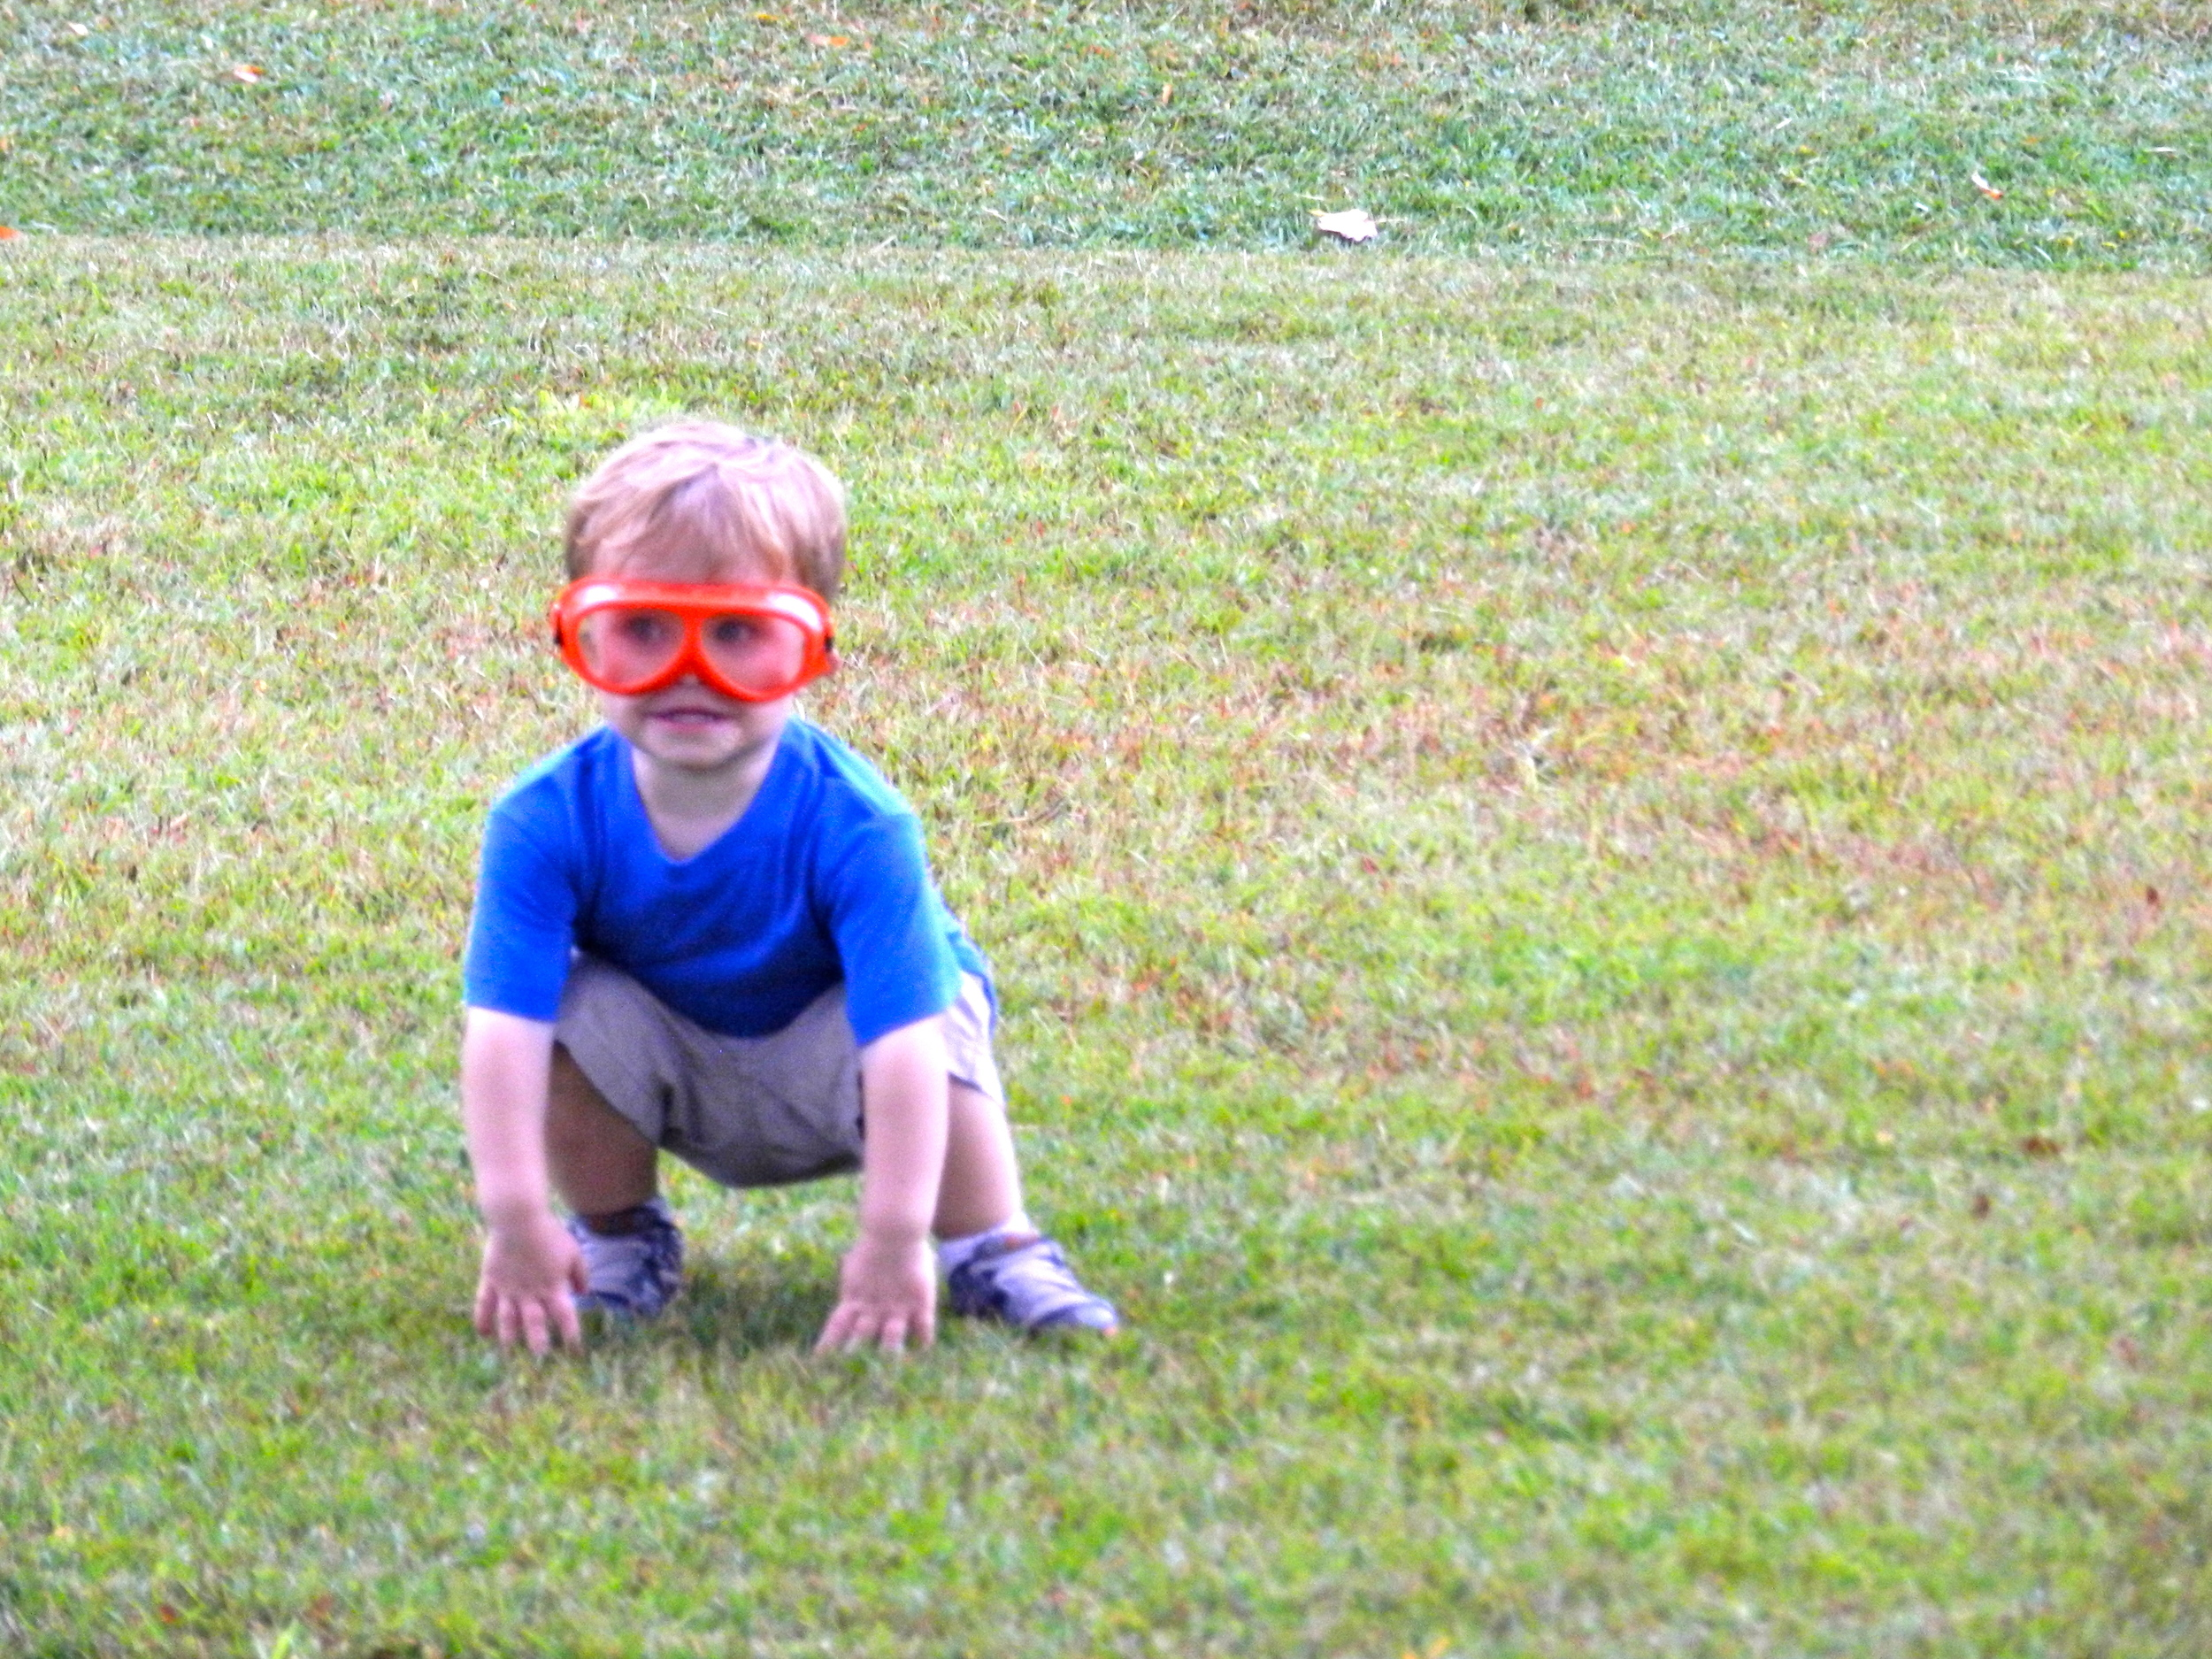 what birthday boy doesn't want new safety glasses!